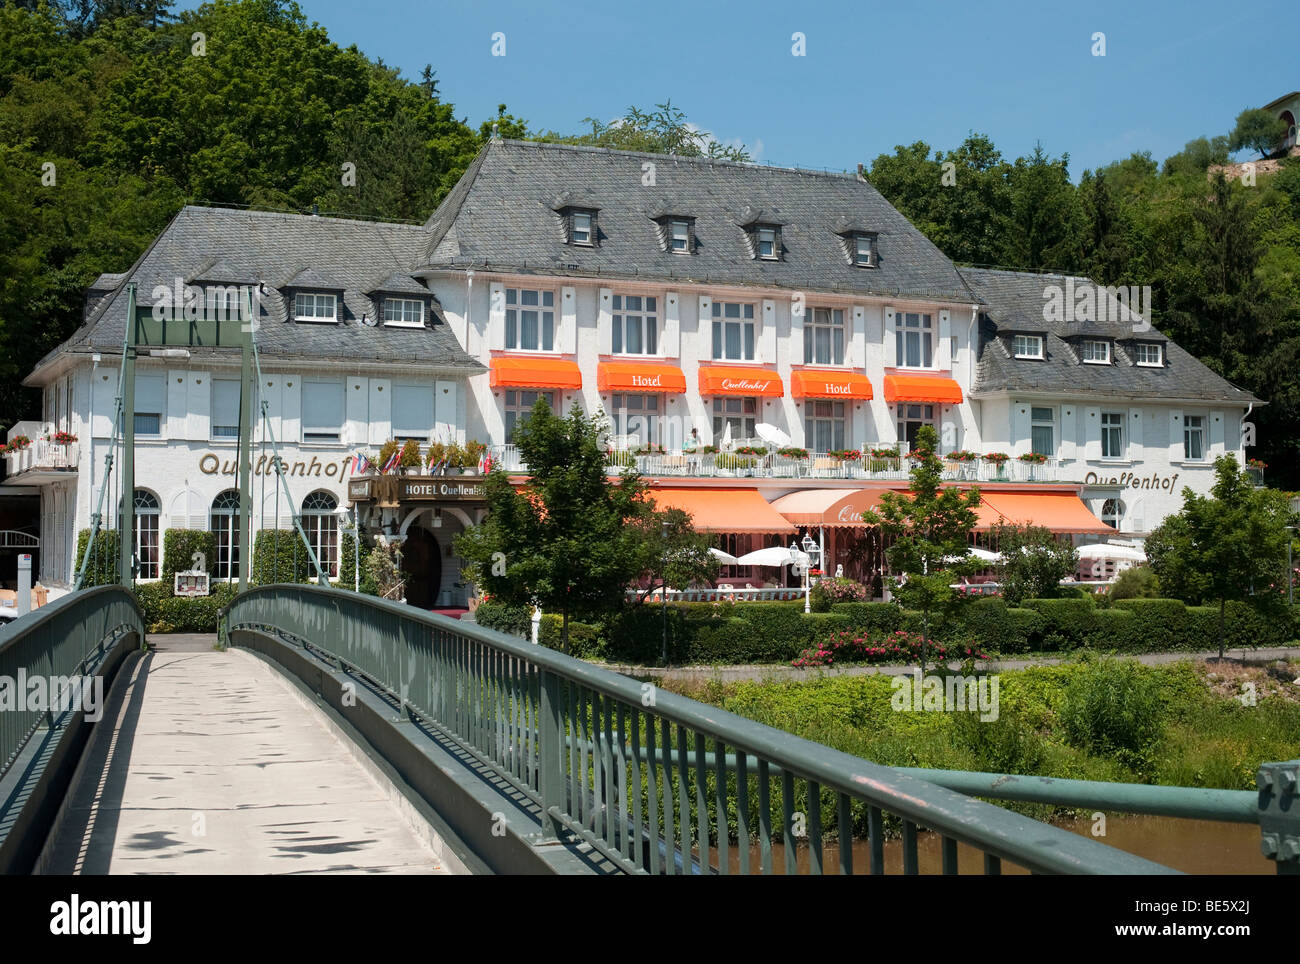 Hotels In Bad Kreuznach